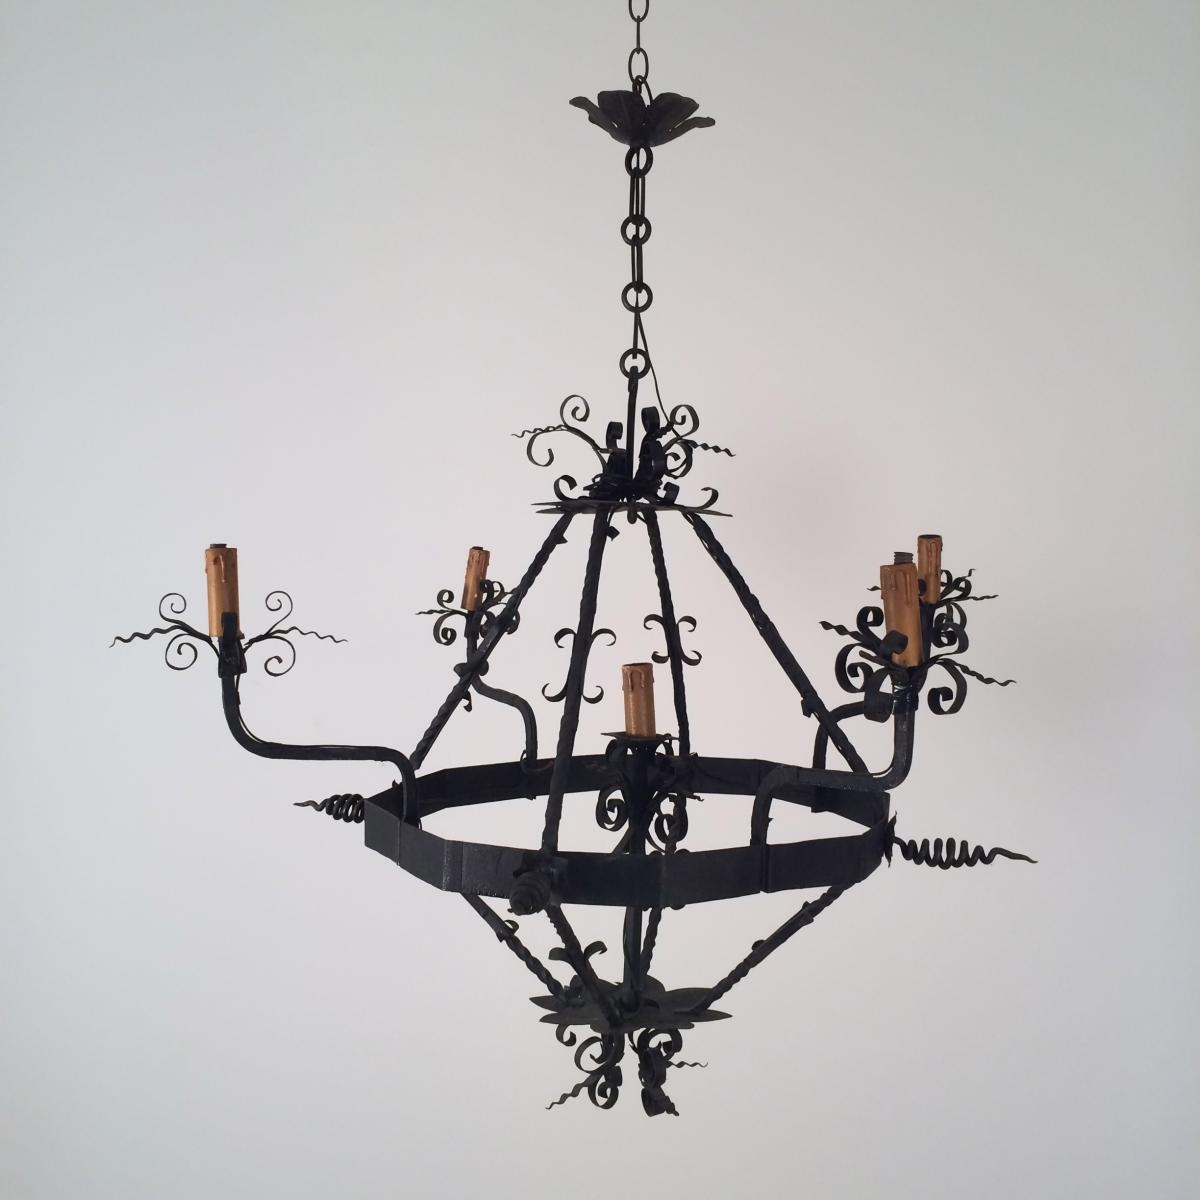 Vintage Wrought Iron Chandelier 1960s For Sale At Pamono Inside Vintage Wrought Iron Chandelier (#10 of 12)